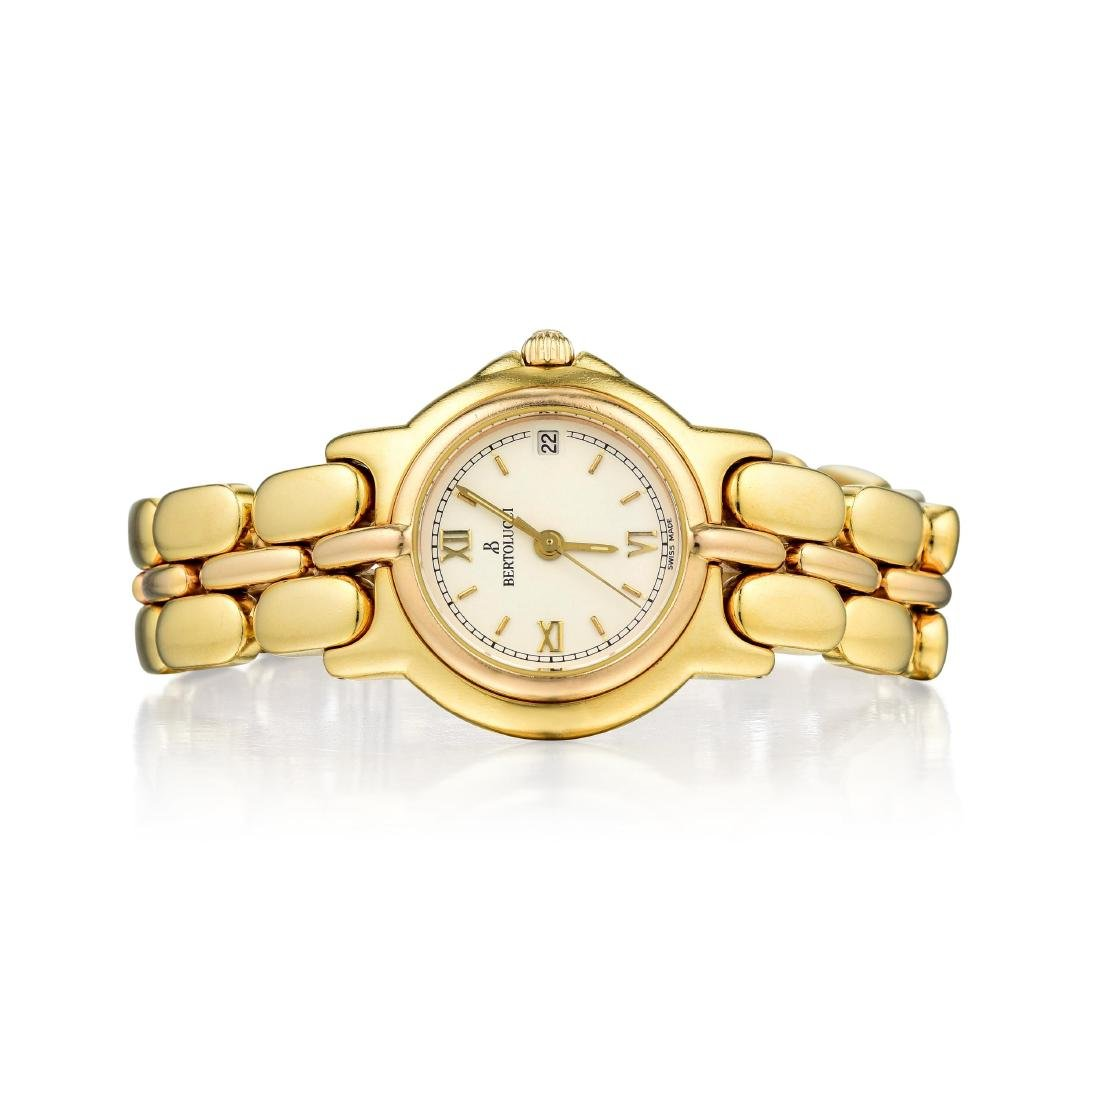 Bertolucci Ladies 18K Gold Pulchra Watch